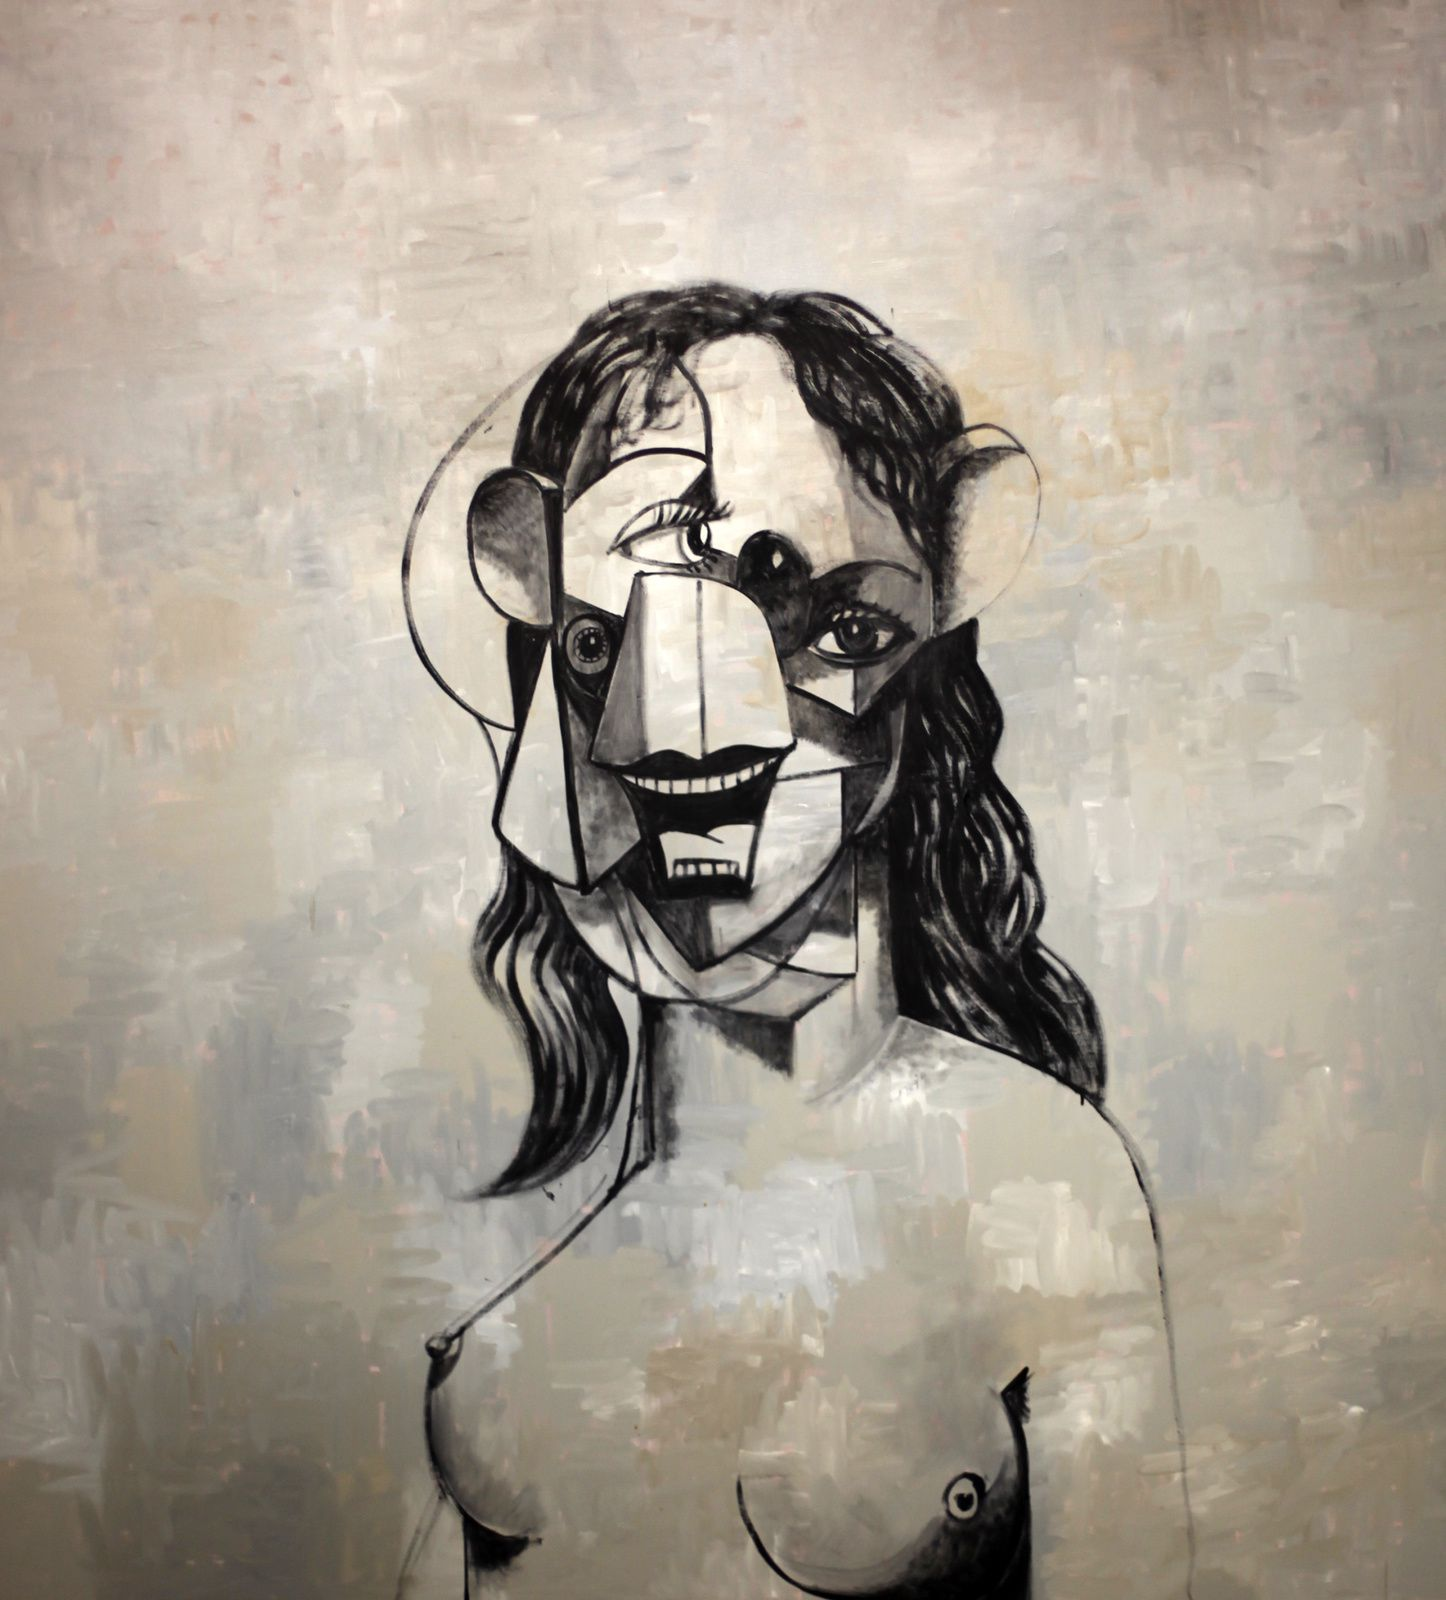 """Painting Drawing"", 2011 de George Condo © Photo Éric Simon"